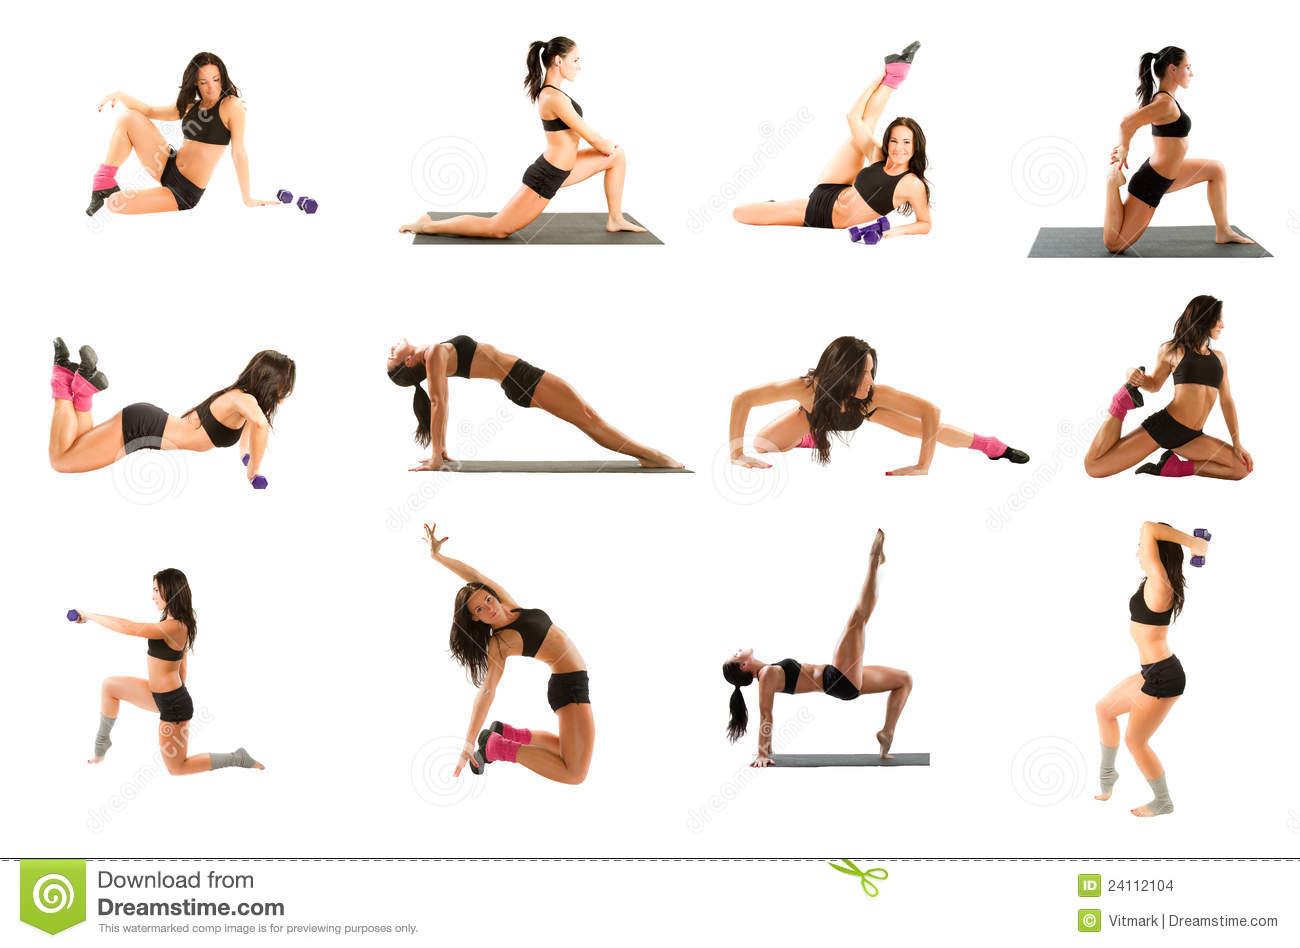 Woman Exercising Collage - Yoga,fitness,pilates Stock Images - Image: 24112104